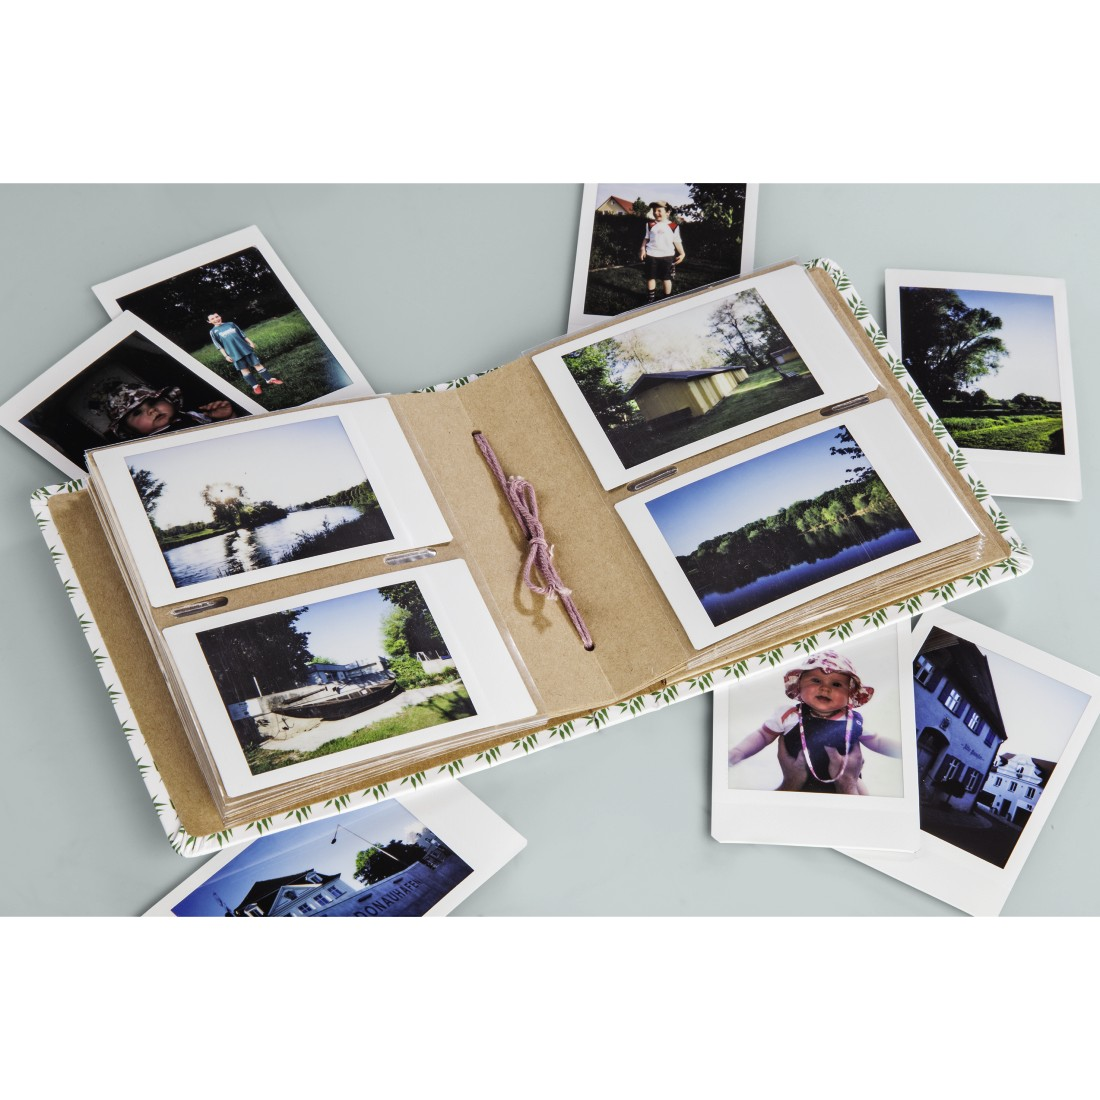 "awx High-Res Appliance - Hama, ""Cool Story"" Slip-In Album, for 56 Instant Photos up to max. 5.4 x 8.6 cm"